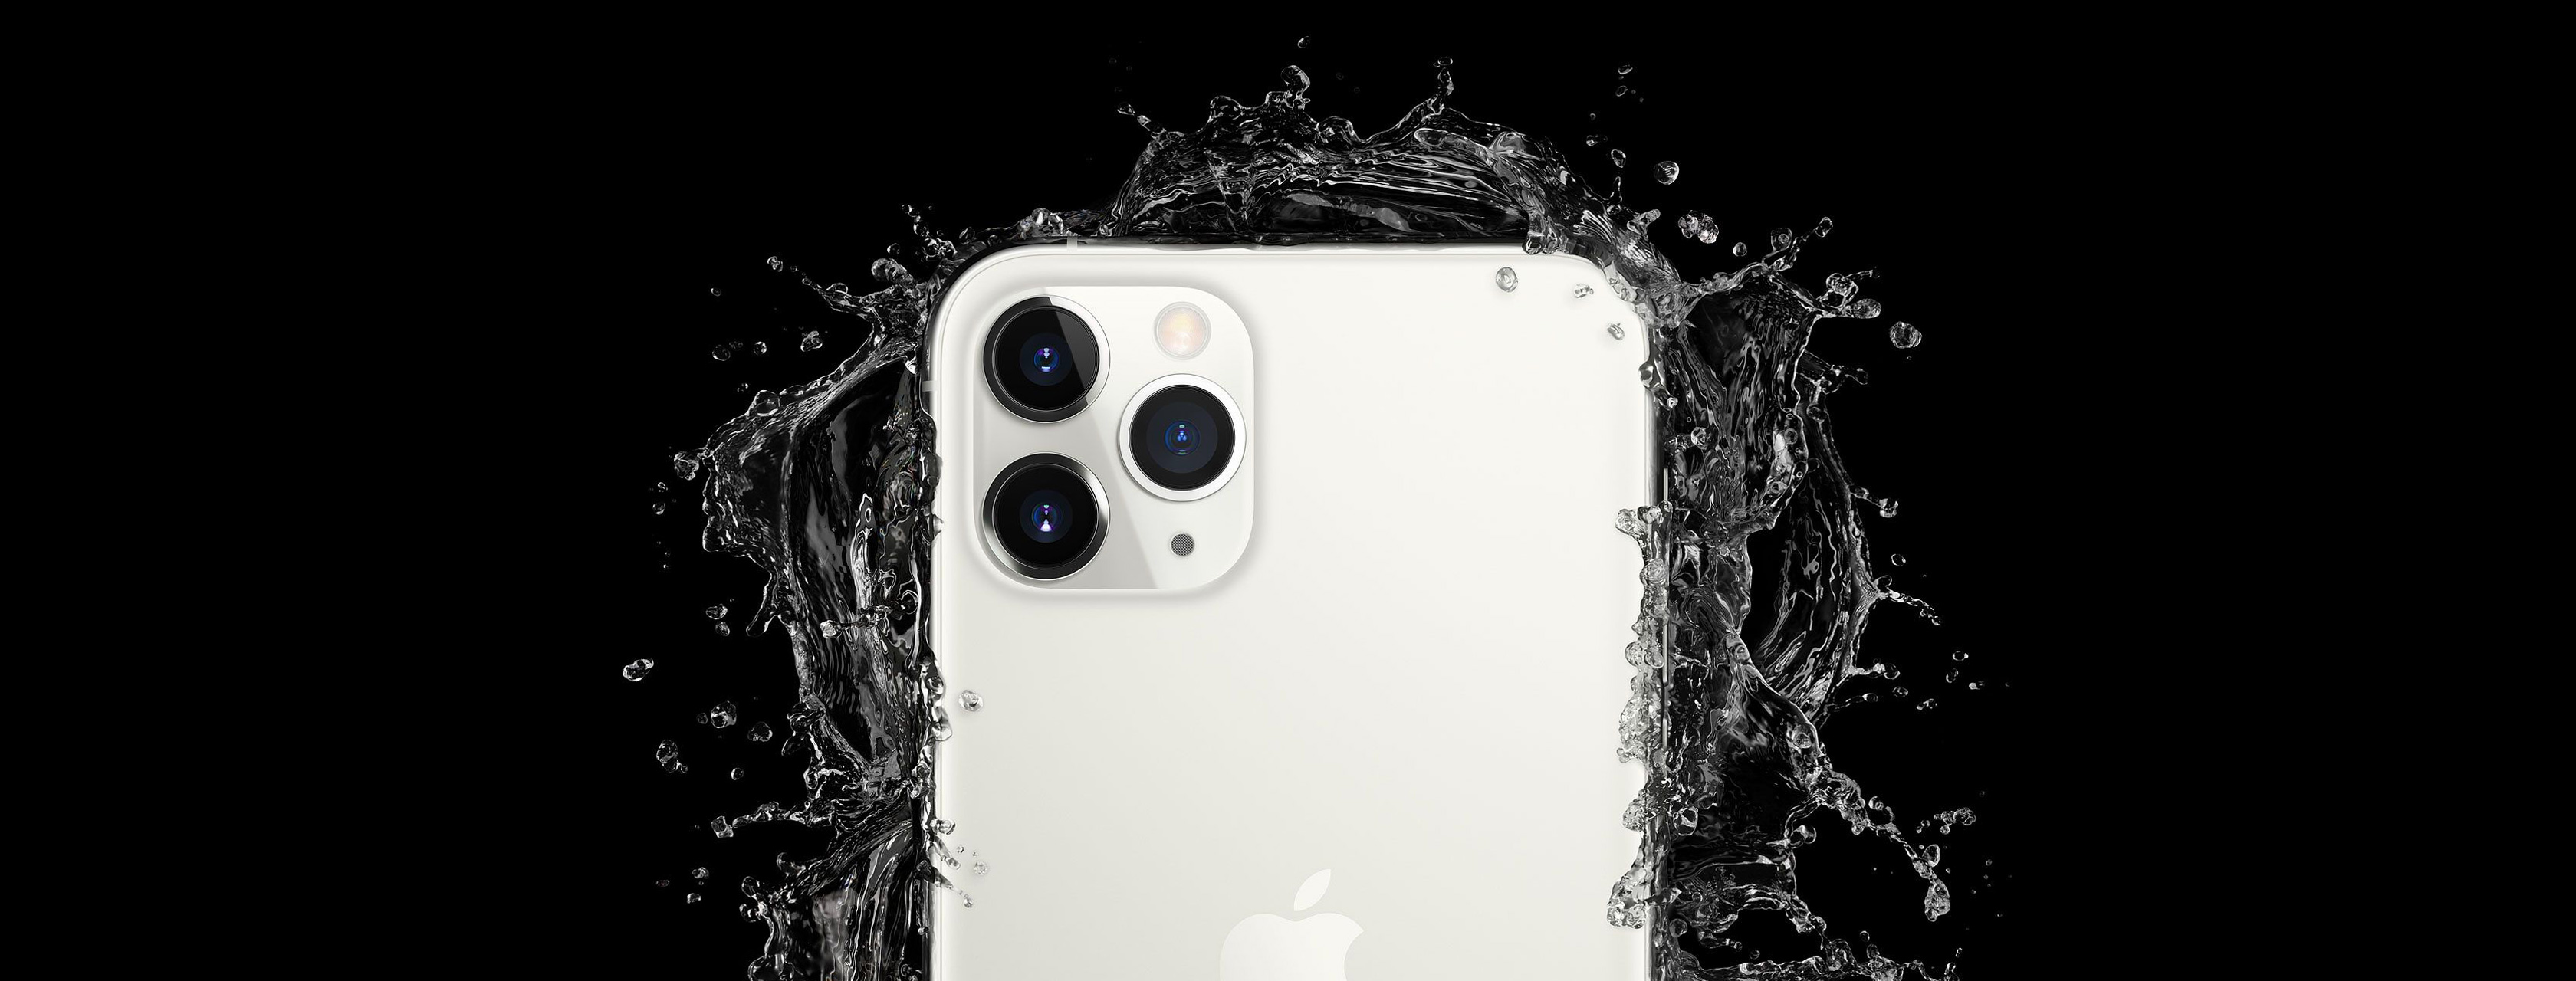 iPhone 11 Pro Waterproof